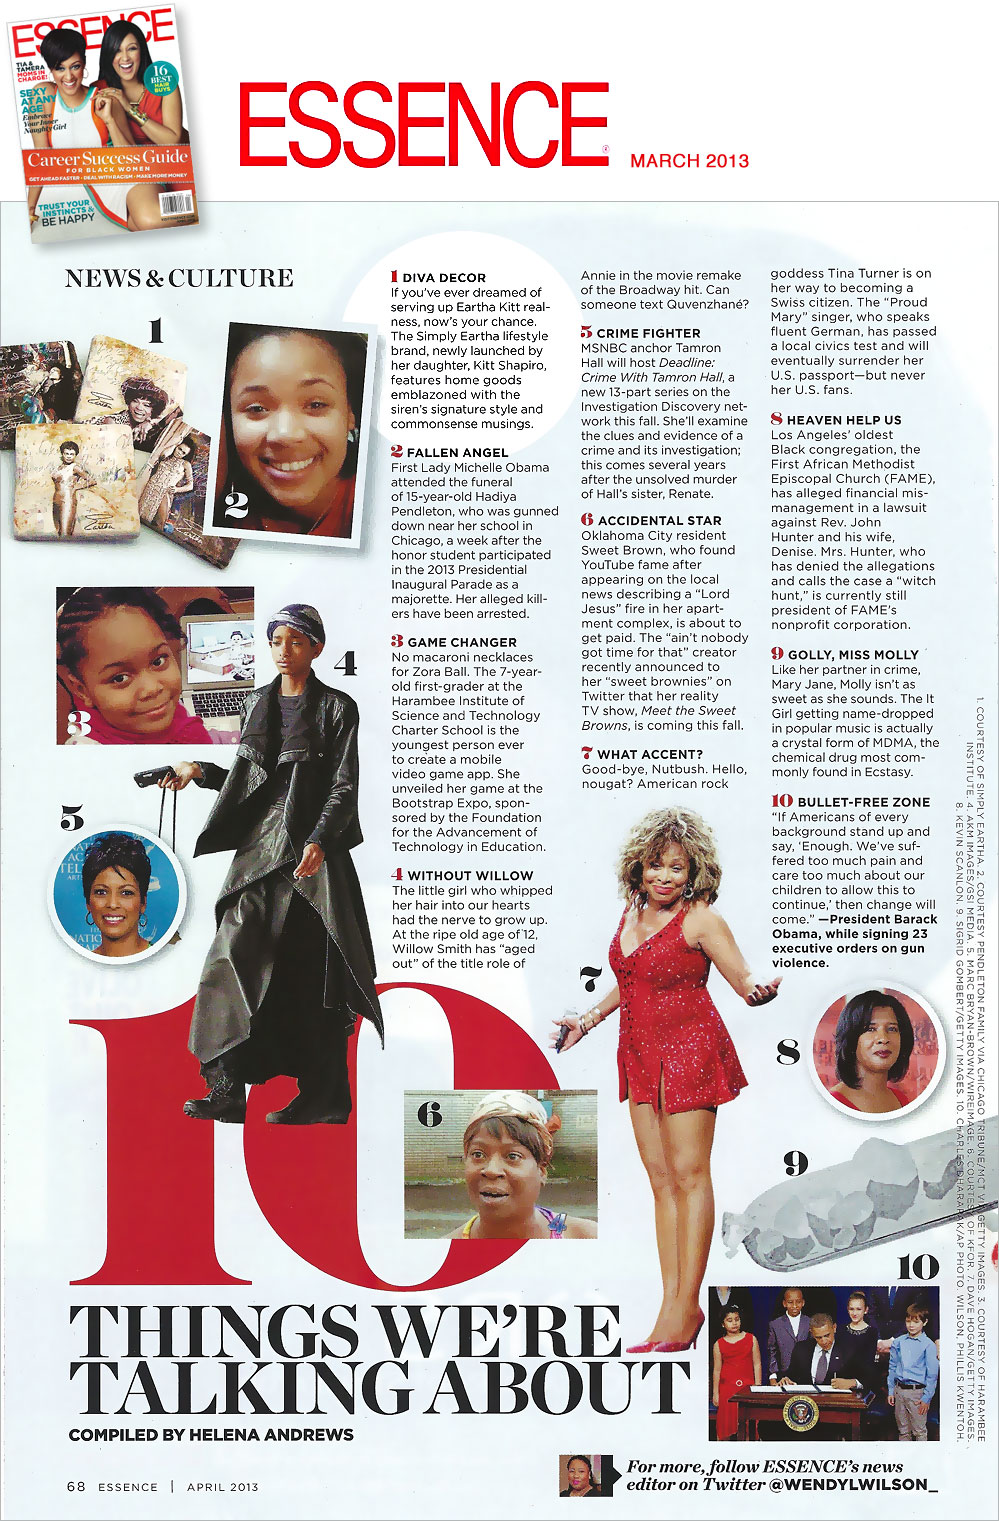 Essence Magazine March 2013